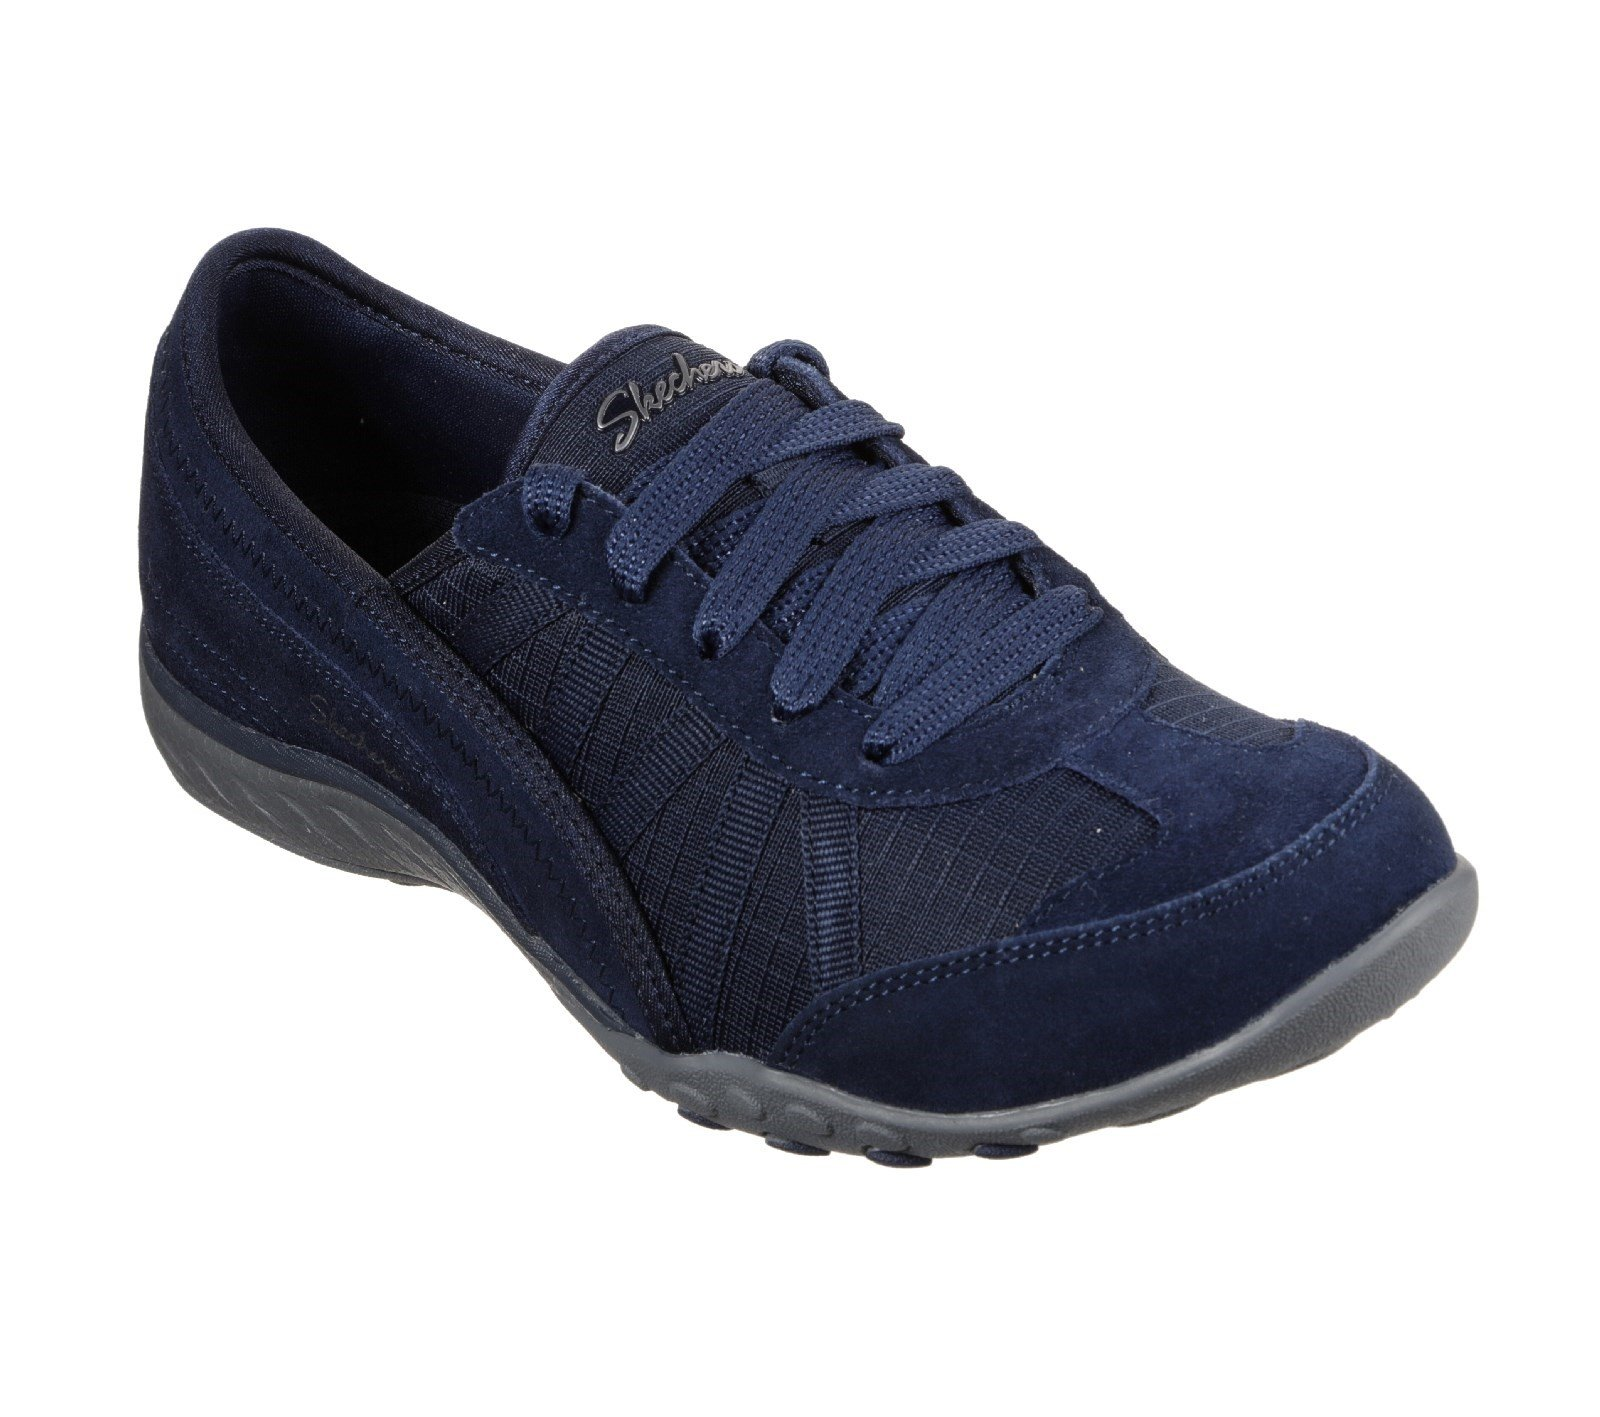 Skechers Women's Breathe-Easy-Weekend Mesh Trainers Various Colours 29534 - Navy/Charcoal 3